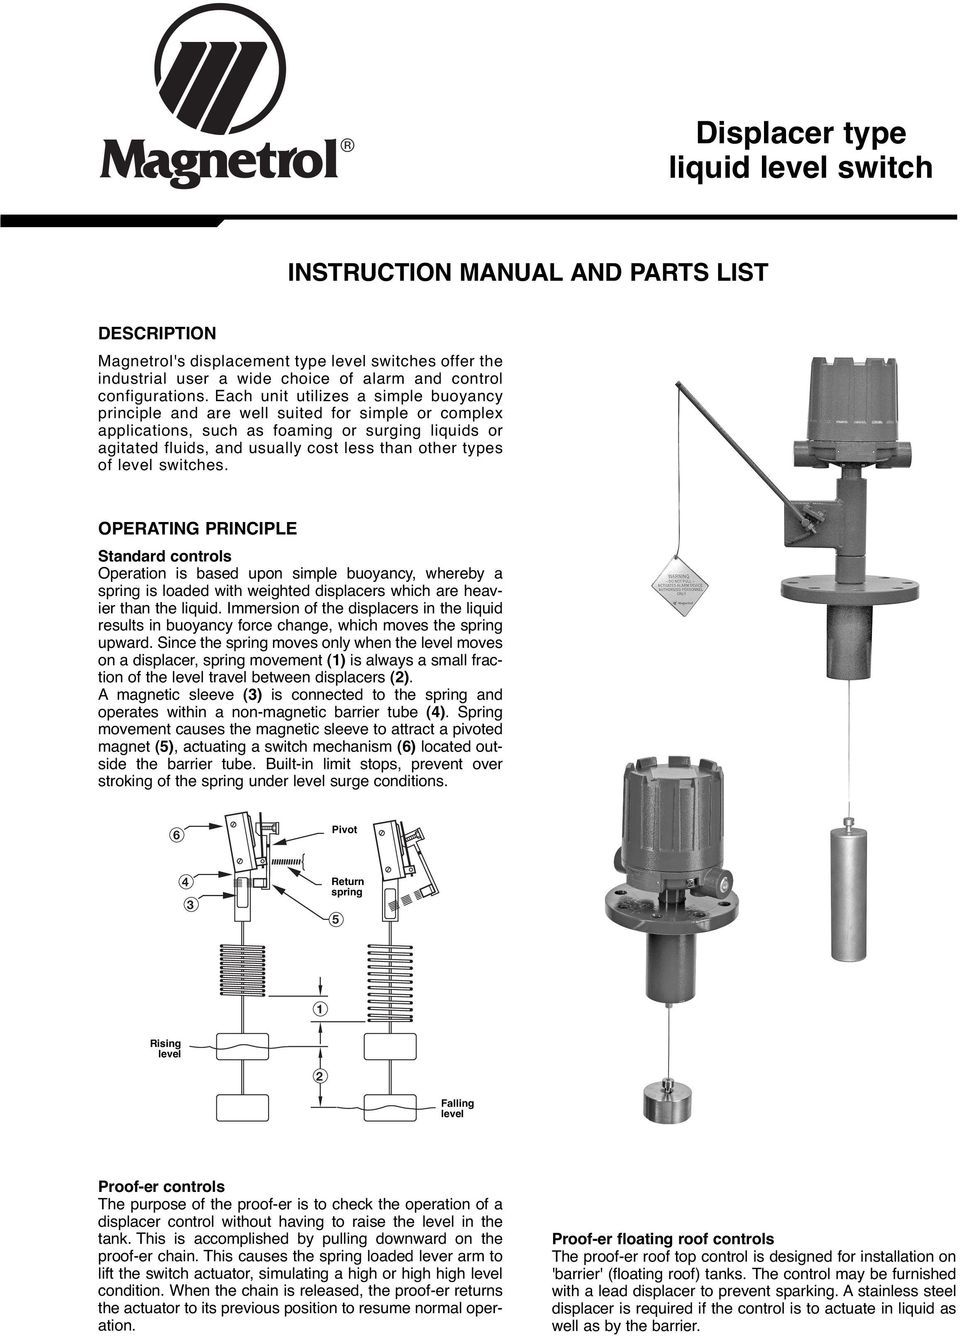 B15 Magnetrol Level Switch Wiring Diagram Trusted Diagrams Liquid Displacer Type Pdf